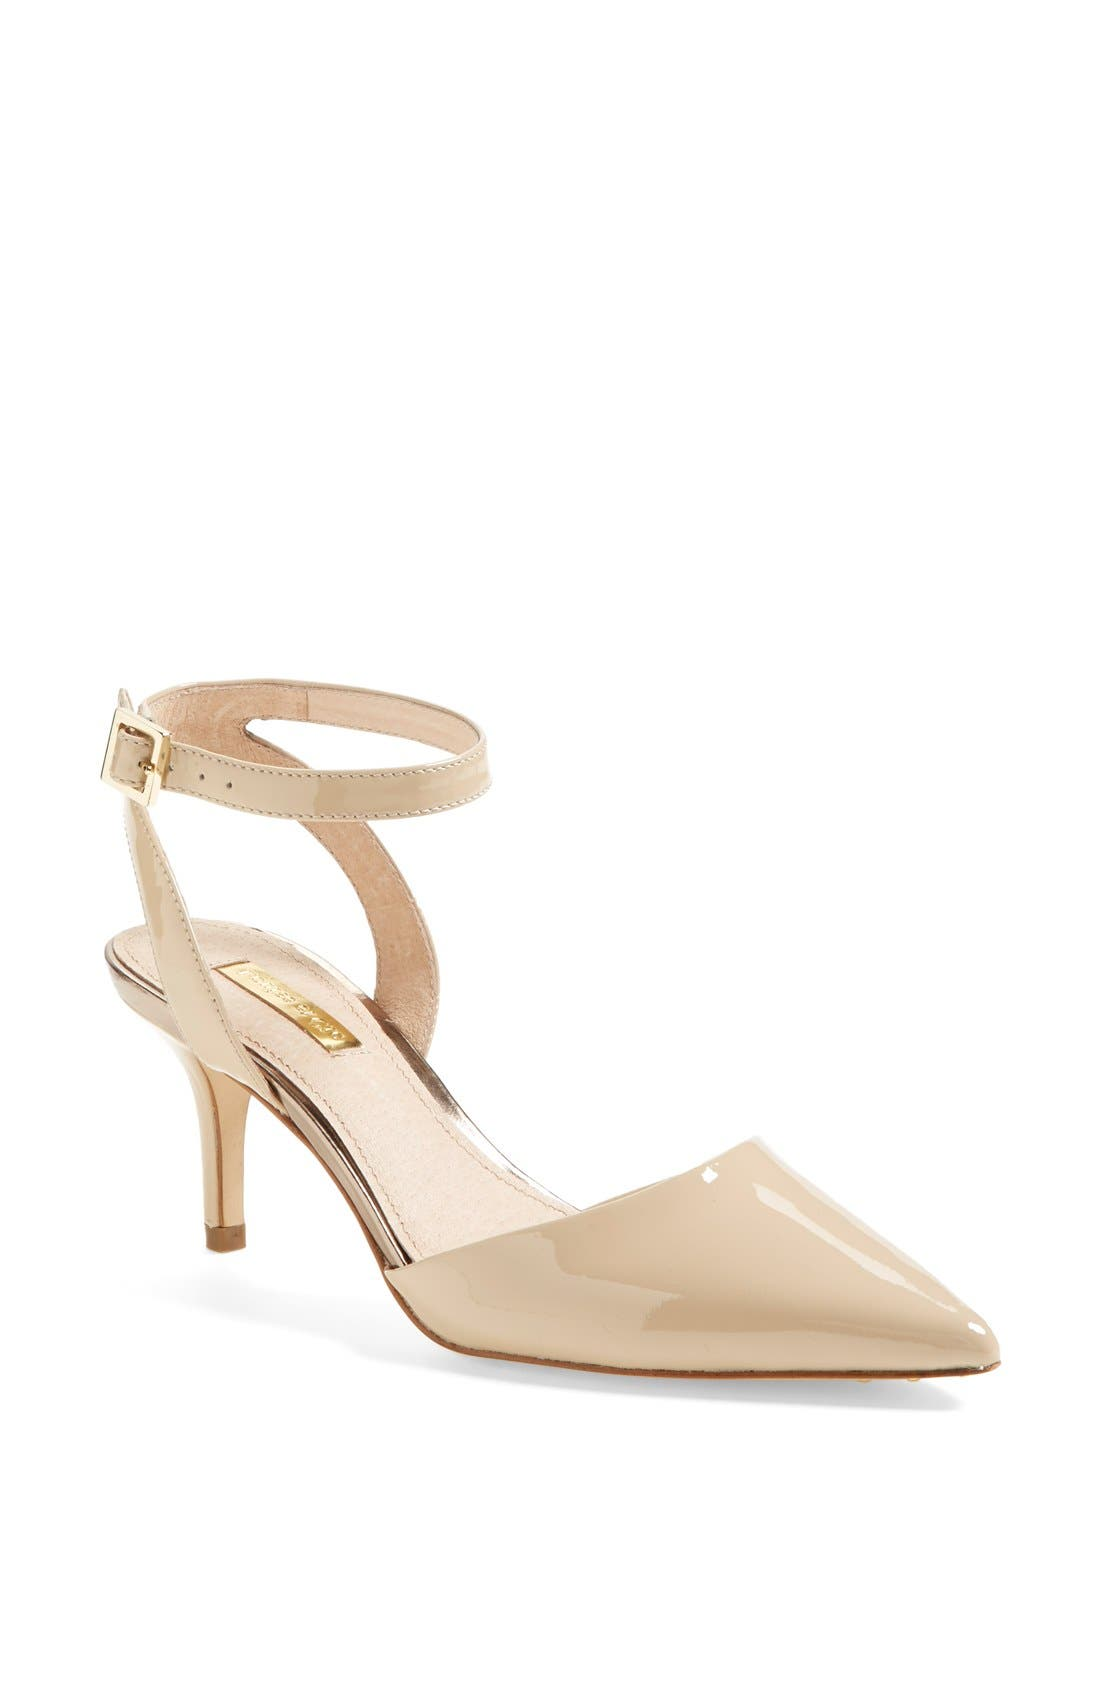 Main Image - Louise et Cie 'Esperance' Pump (Women)